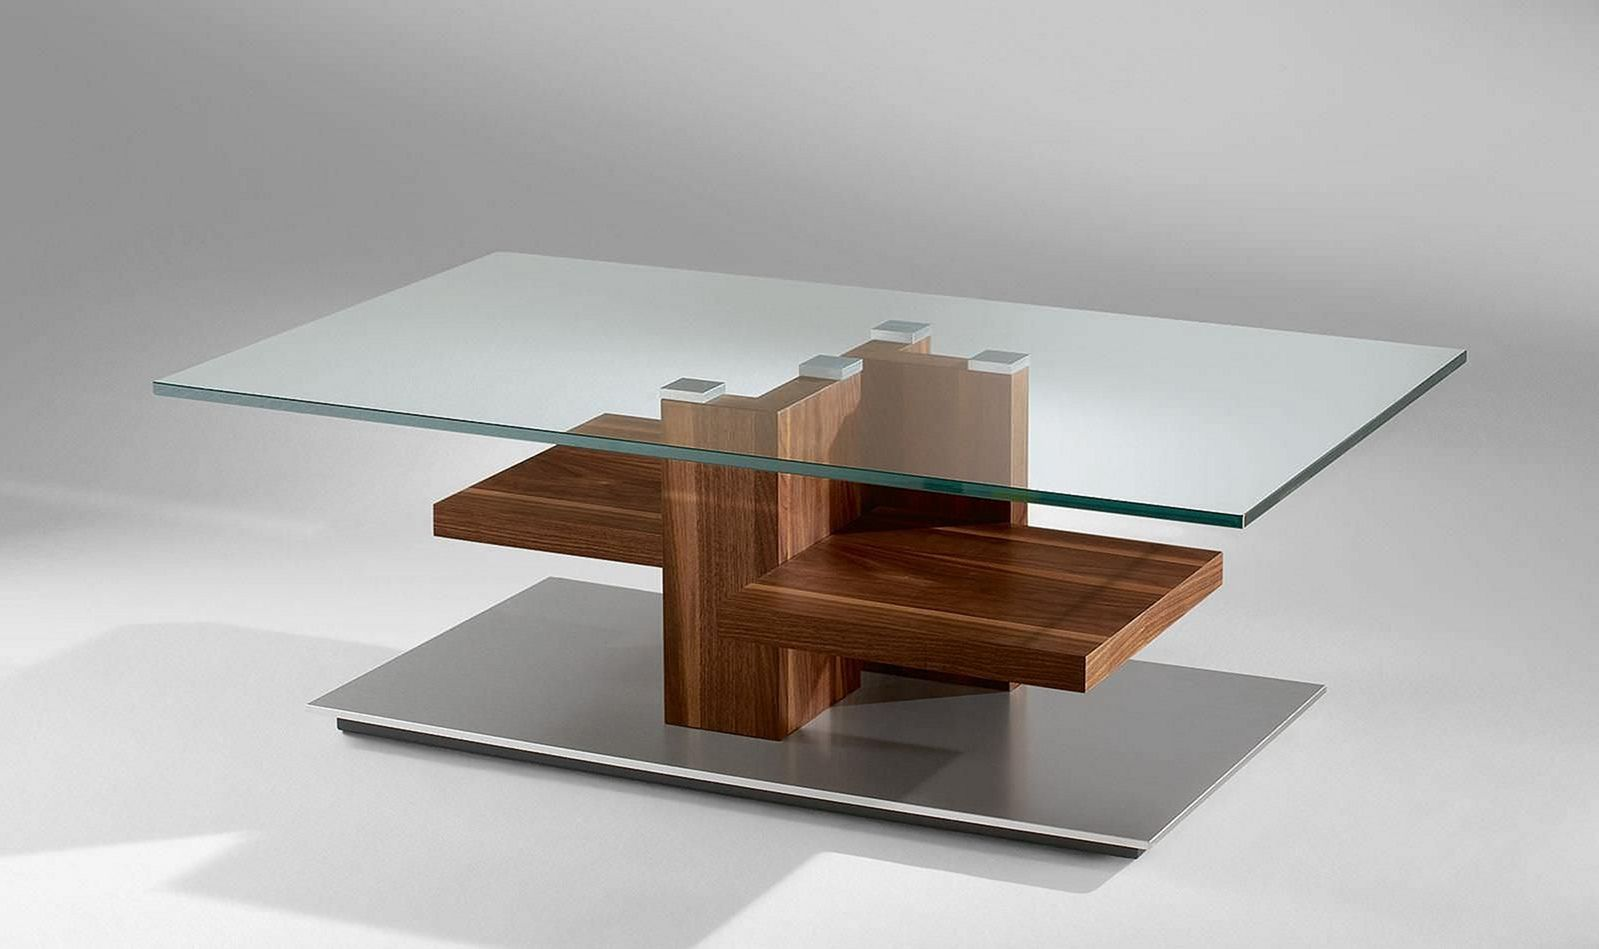 Outstanding 10 Awesome Artistic Wood Tv Table Designs For Your Living Glass Coffee Tables Living Room Contemporary Glass Coffee Tables Living Room Coffee Table [ 949 x 1599 Pixel ]